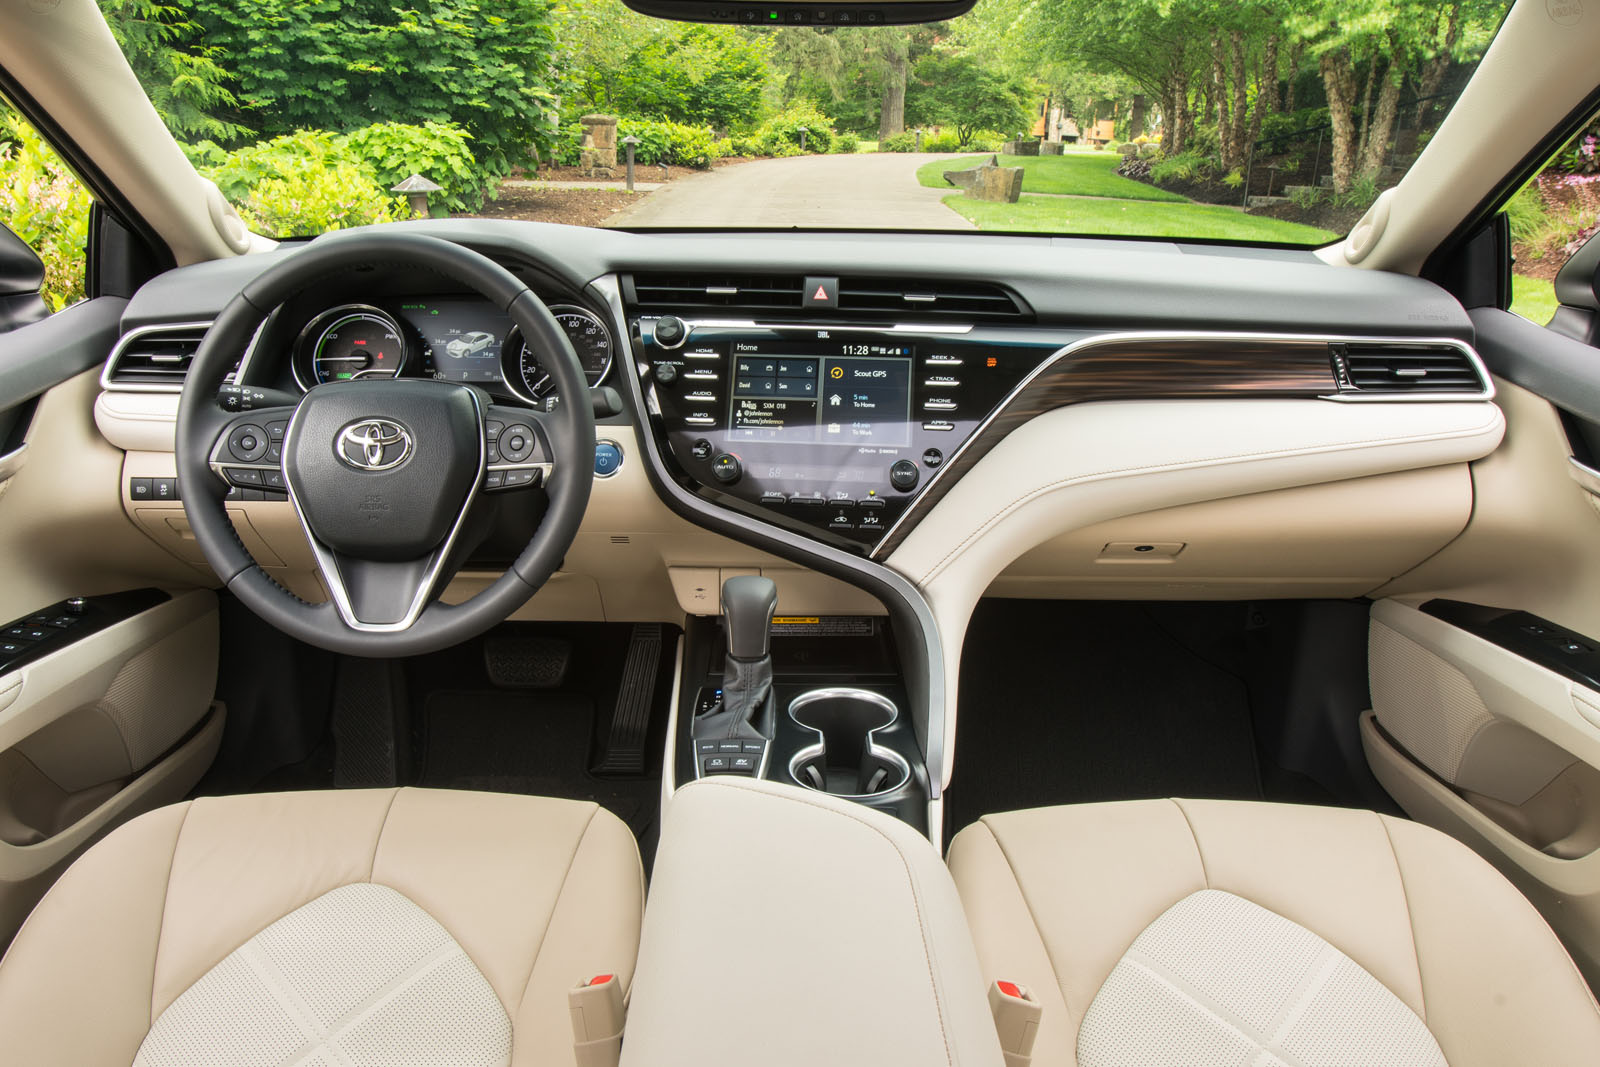 2018 Toyota Camry Hybrid Review 06